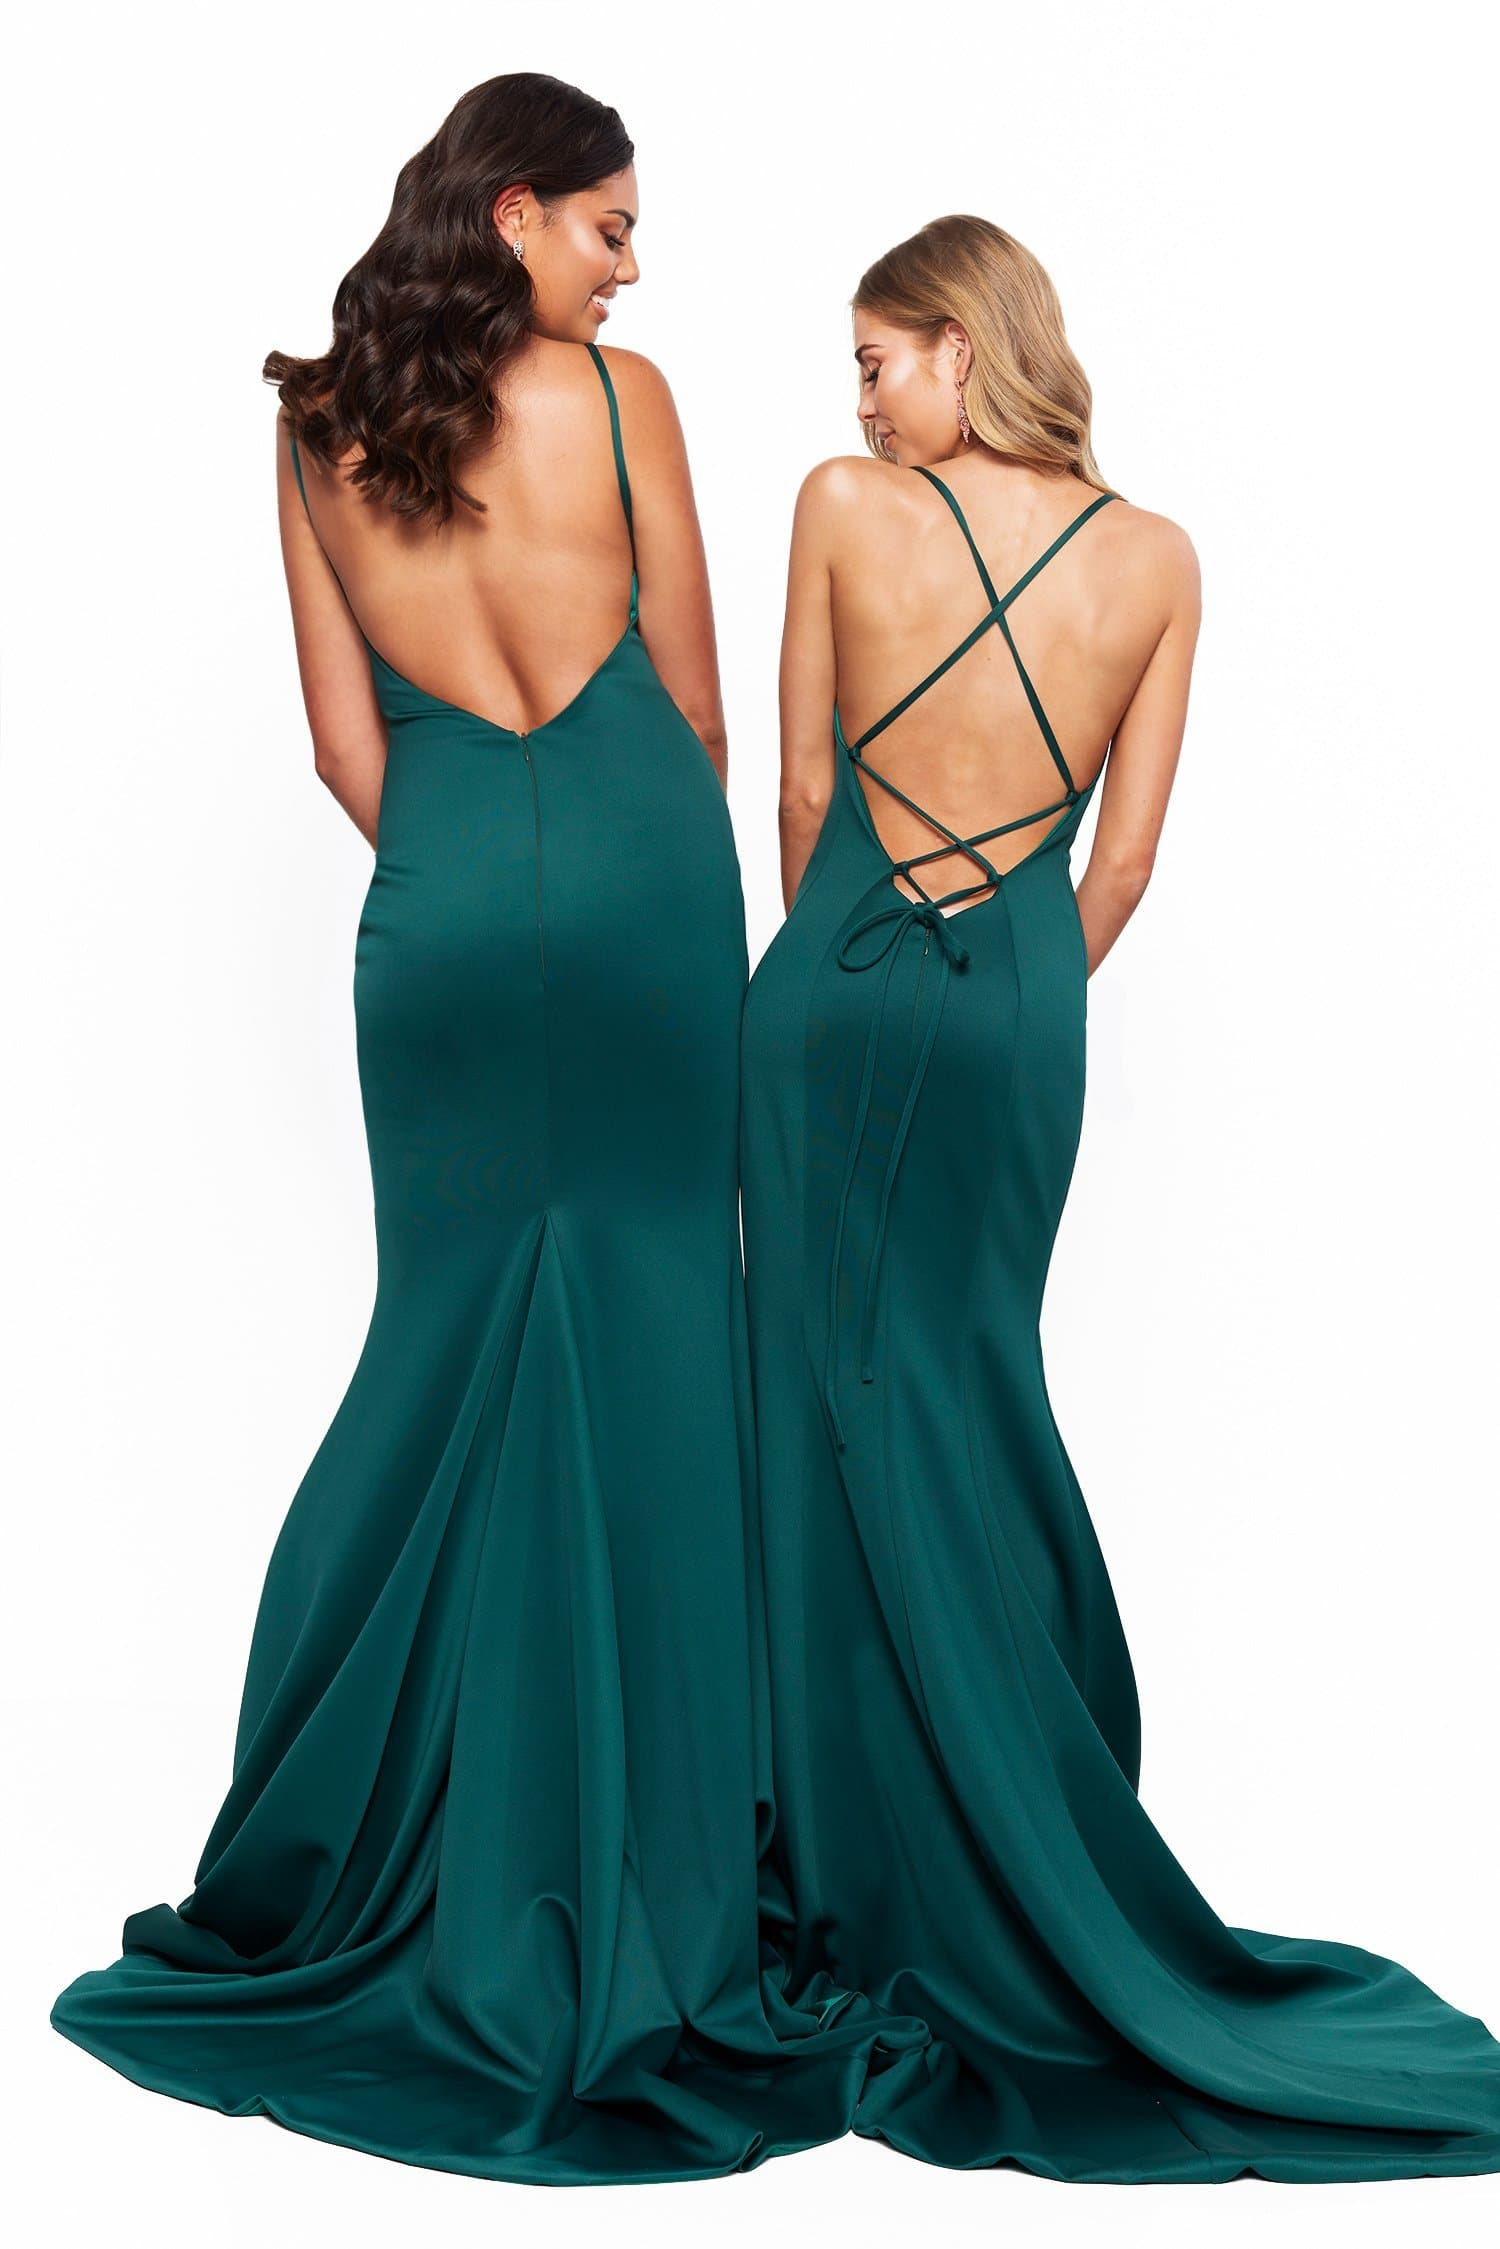 A&N Bridesmaids Jada Gown - Emerald